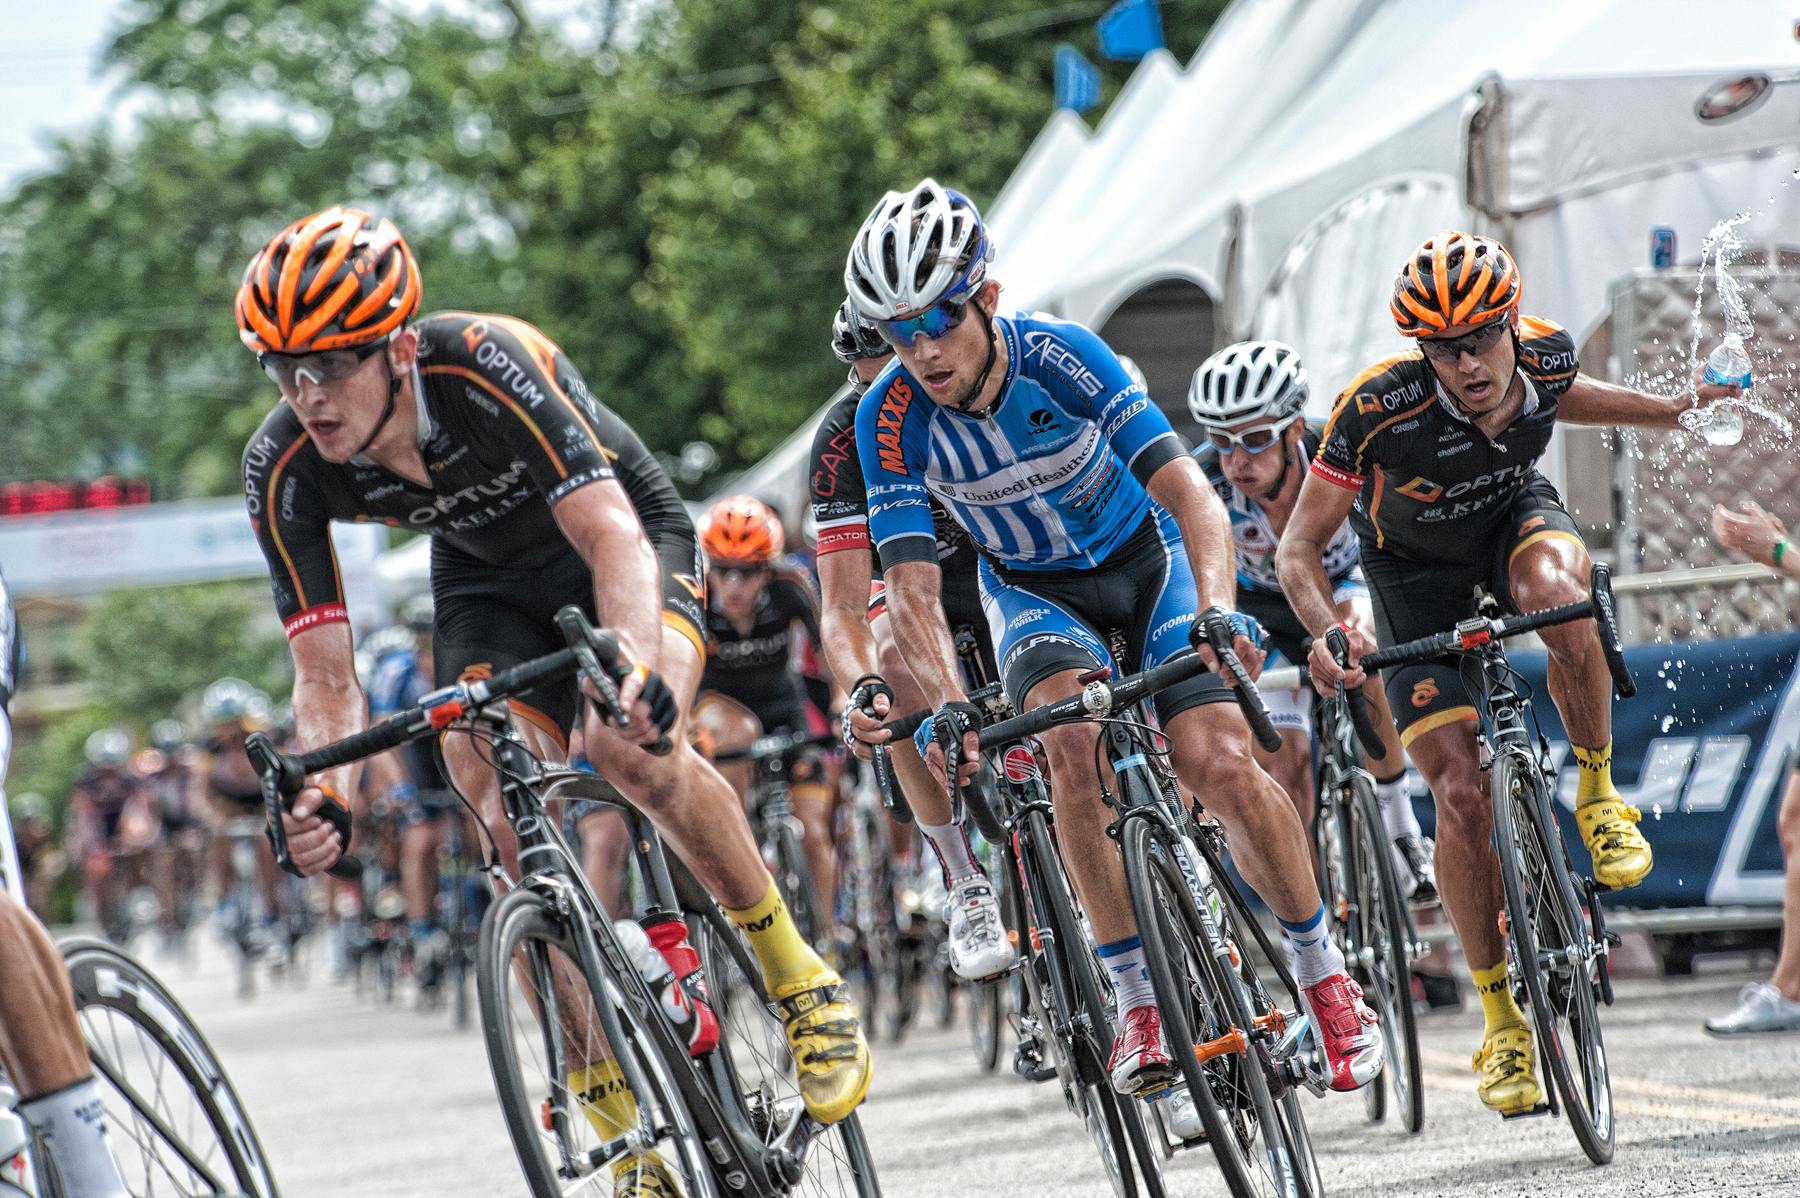 Philadelphia International Cycling Championship